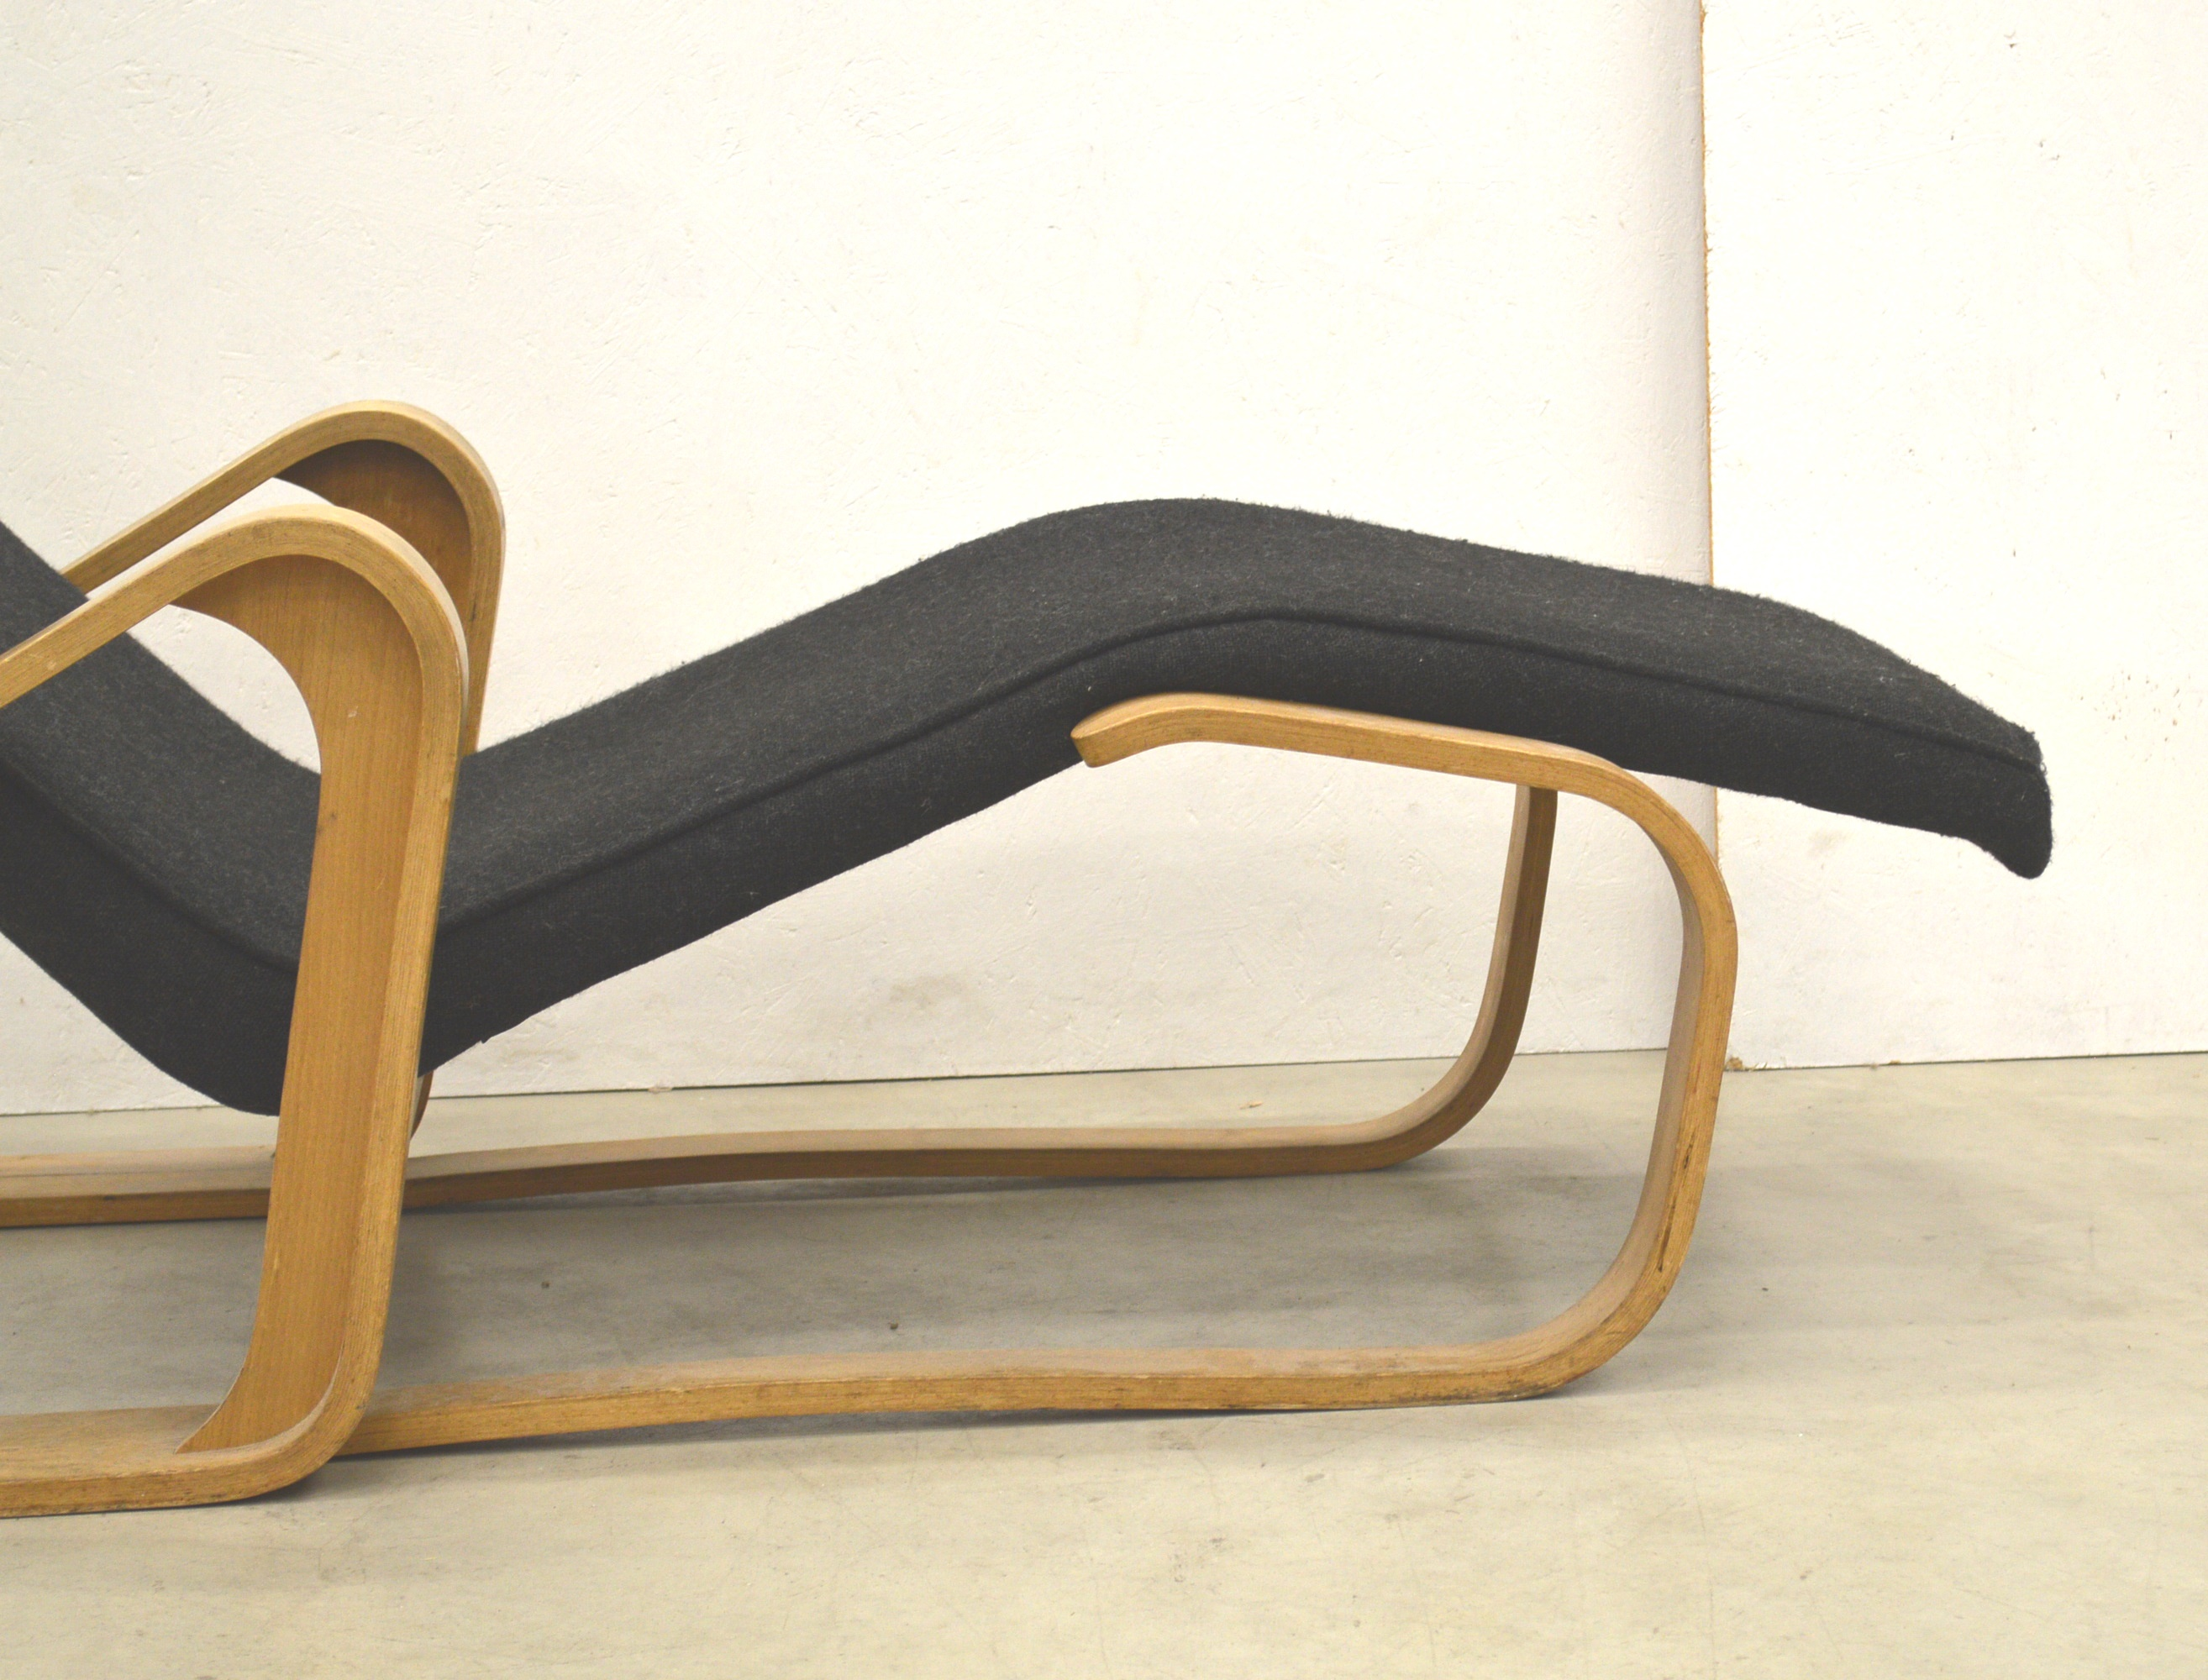 Marcel Breuer Chaise Longue by Isokon 40s   Interior Aksel